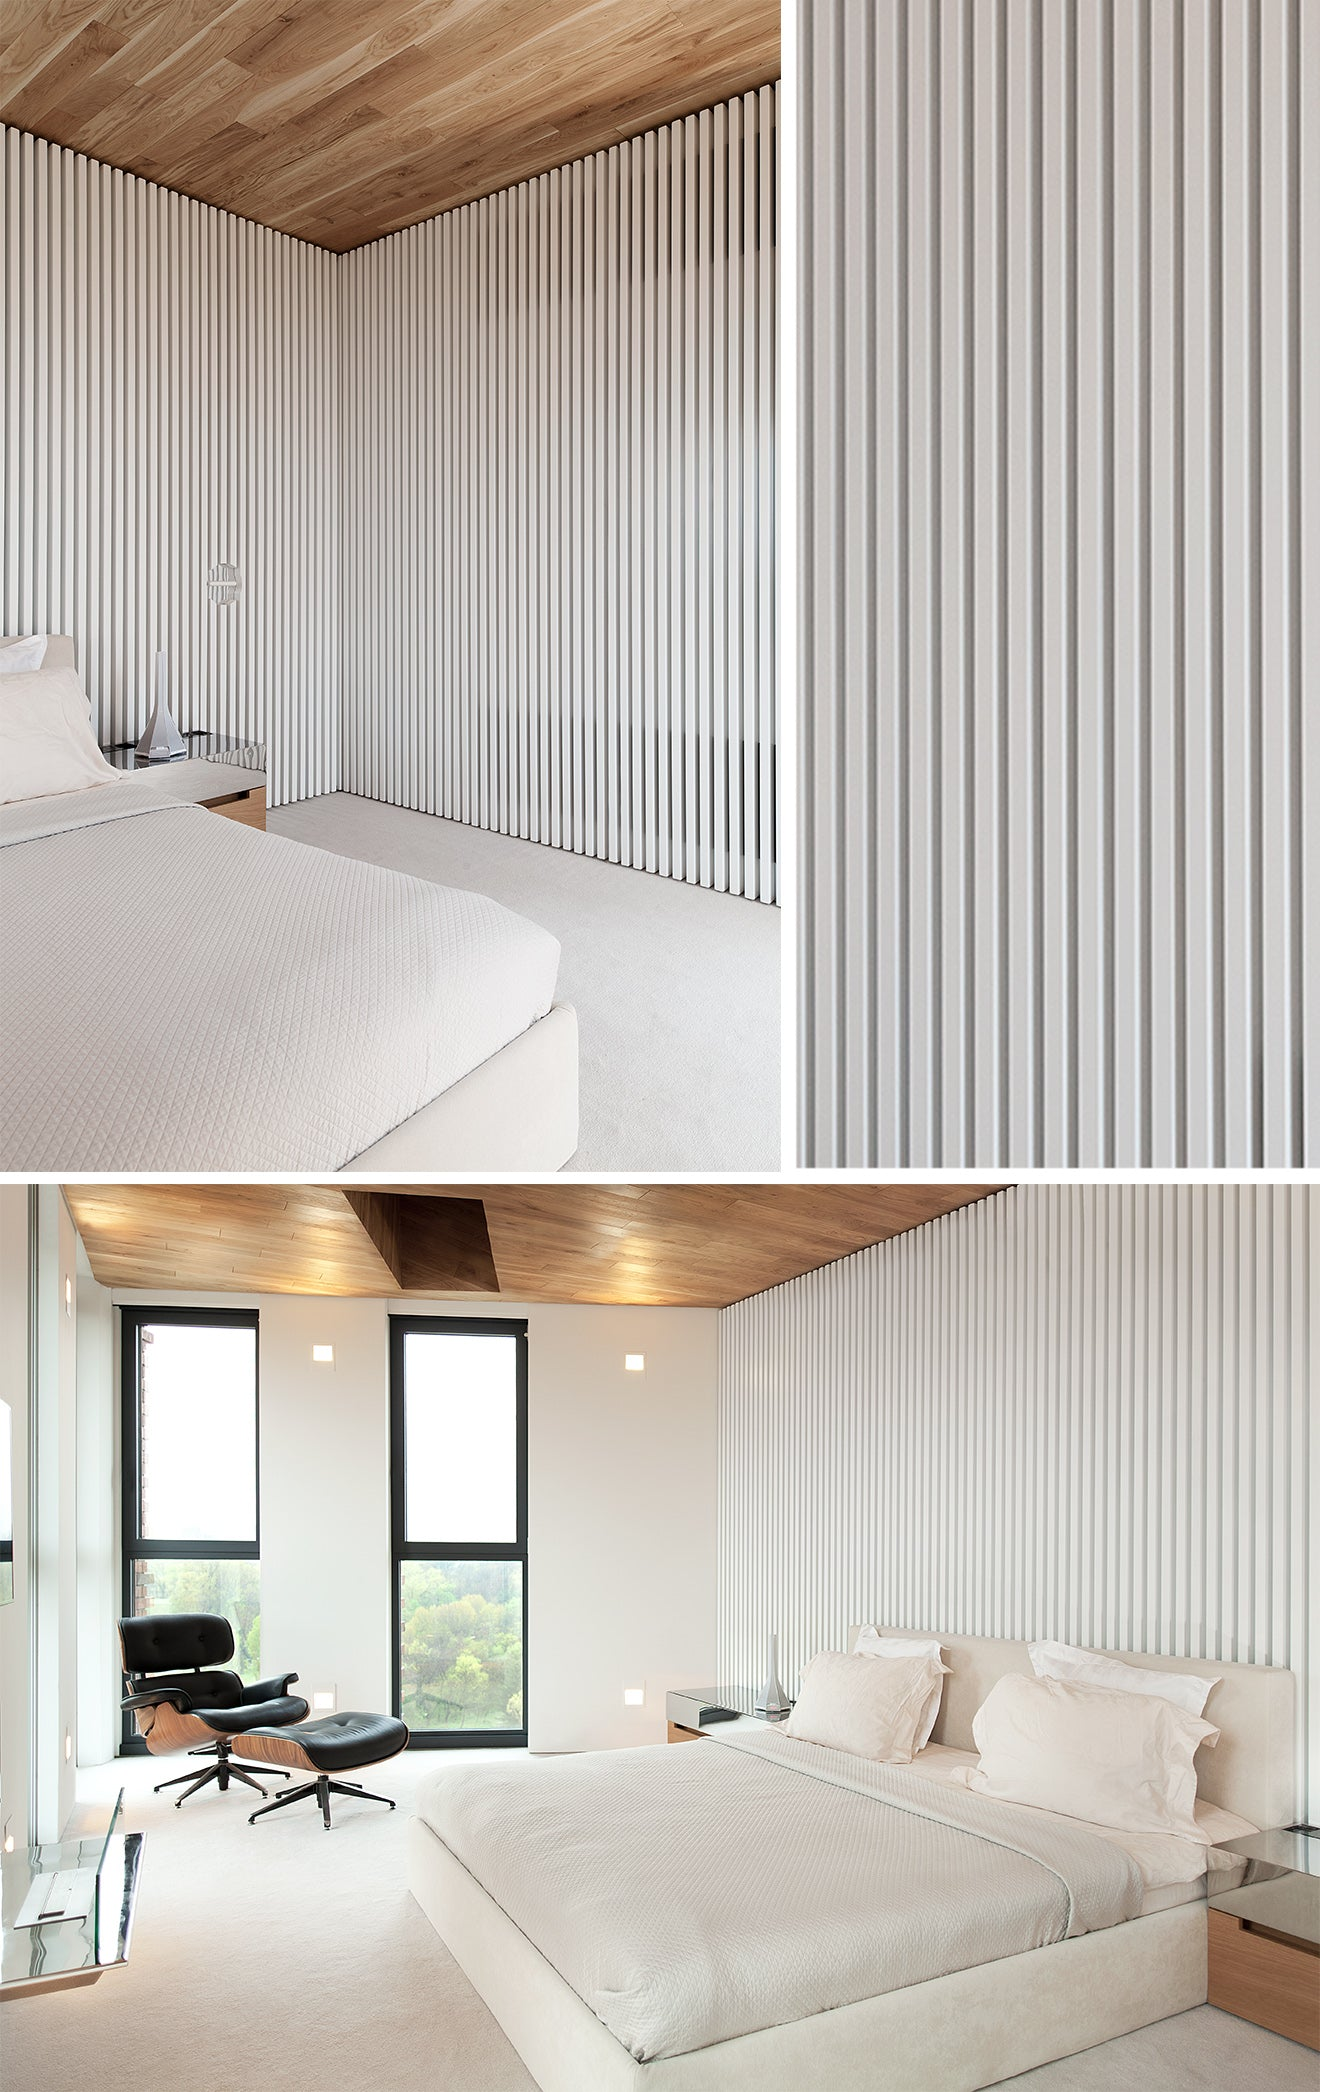 Studio Mode modern white bedroom interior design with wooden ceiling